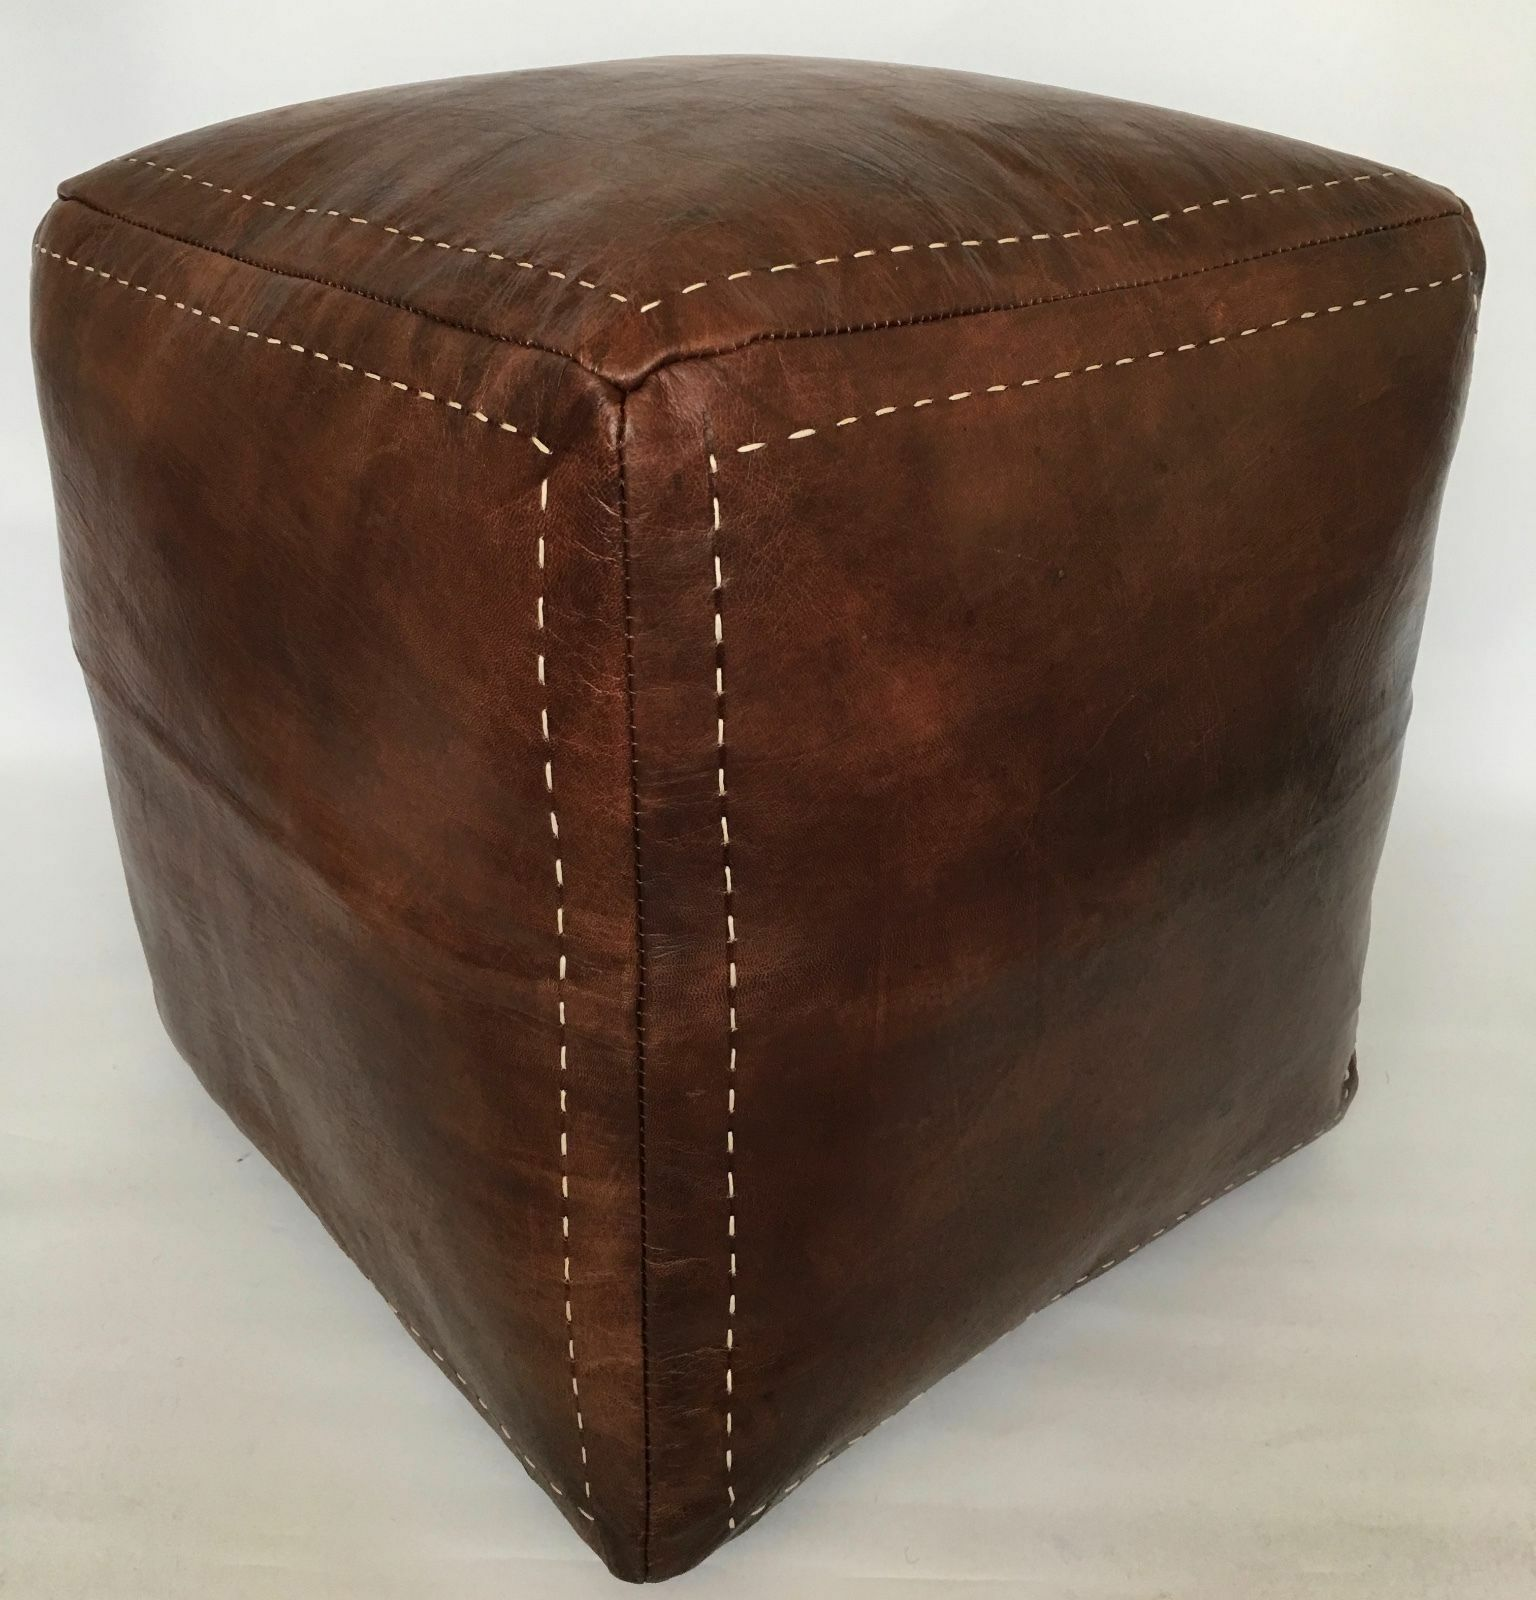 FREE SHIPPING ORIGINAL SQUARE POUF, MGoldCCAN HANDMADE LEATHER POUF,